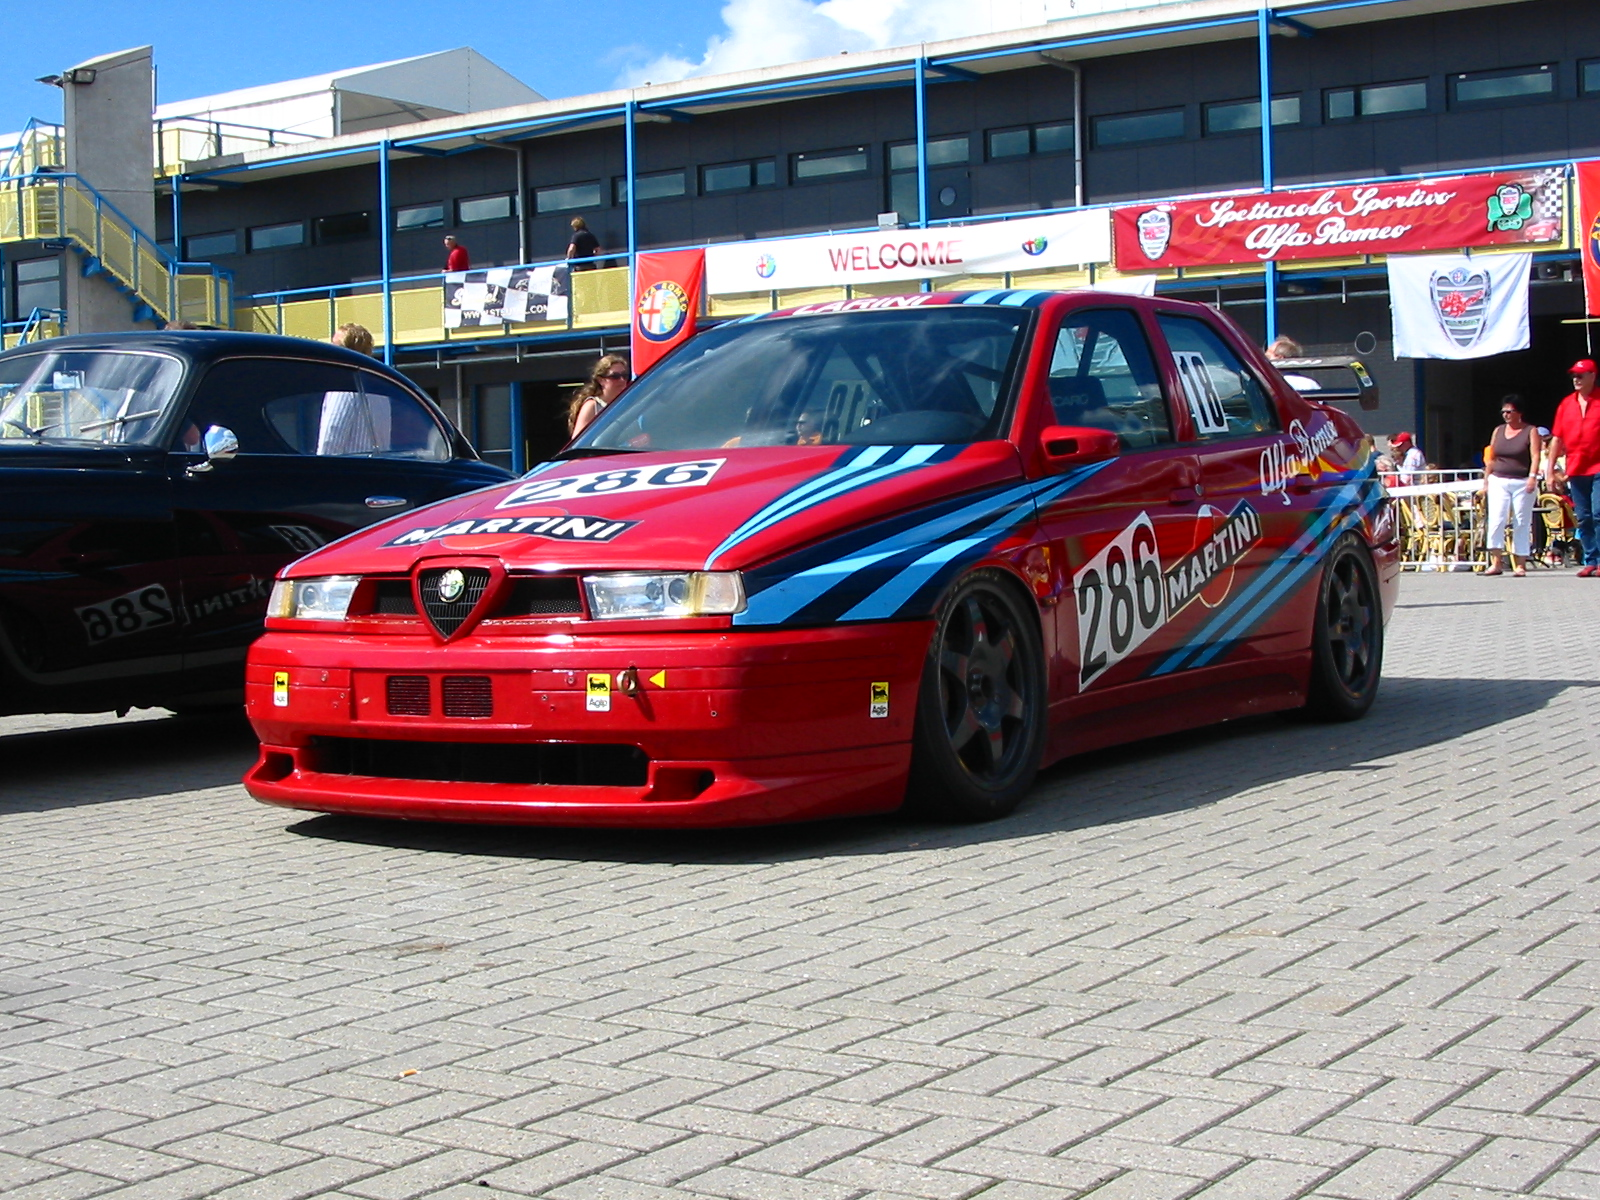 Alfa romeo 155 v6 ti dtm for sale 16